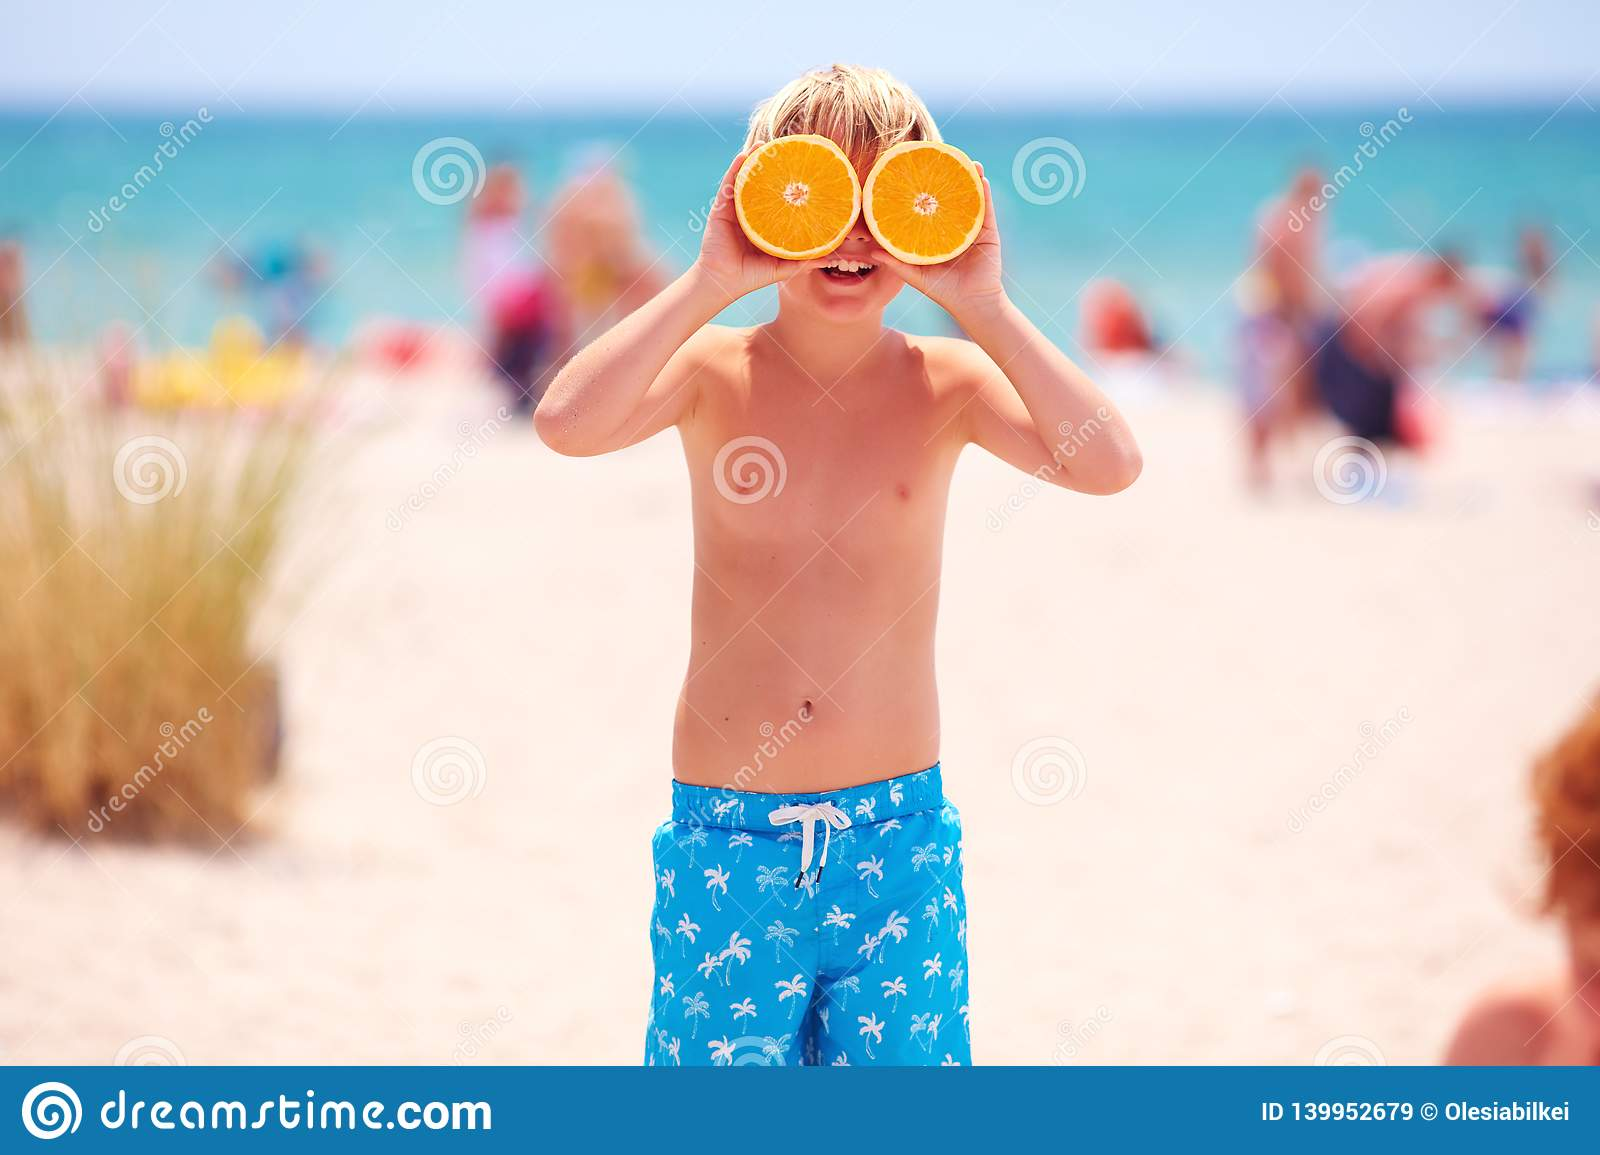 Happy young boy, kid with citrus eyes on sandy beach during summer vacation